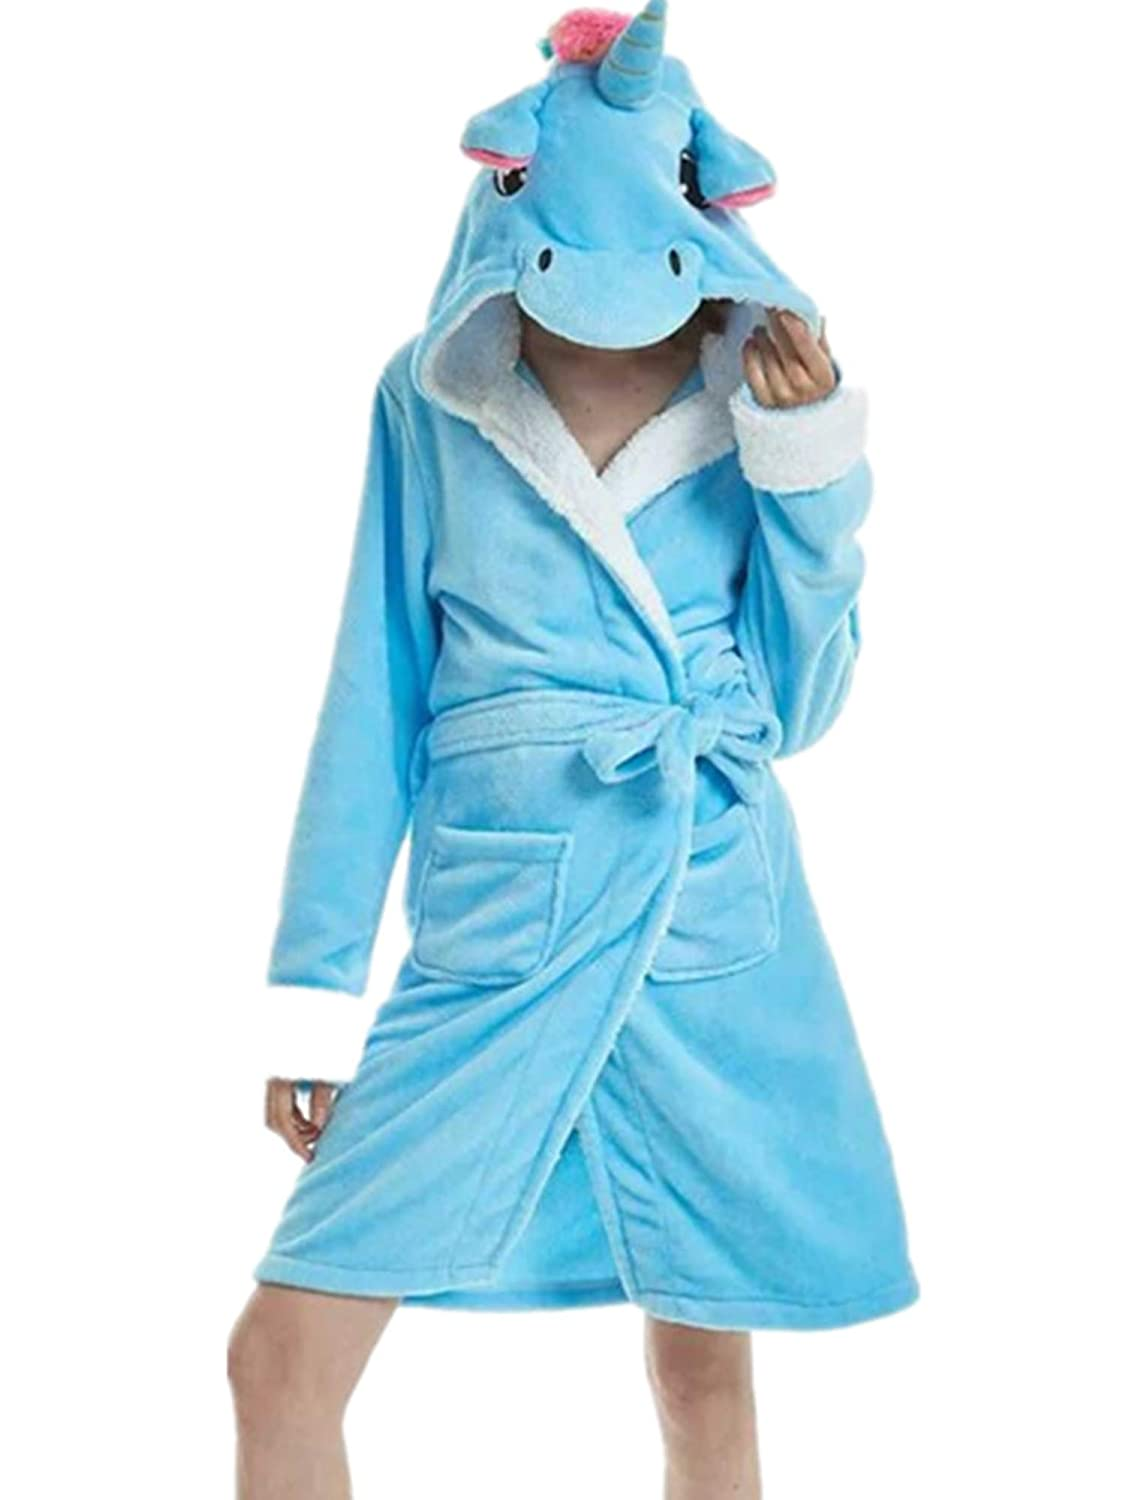 Crazycatz@ Girls Unicorn Soft Fleece Hooded Bathrobe Dressing Gown